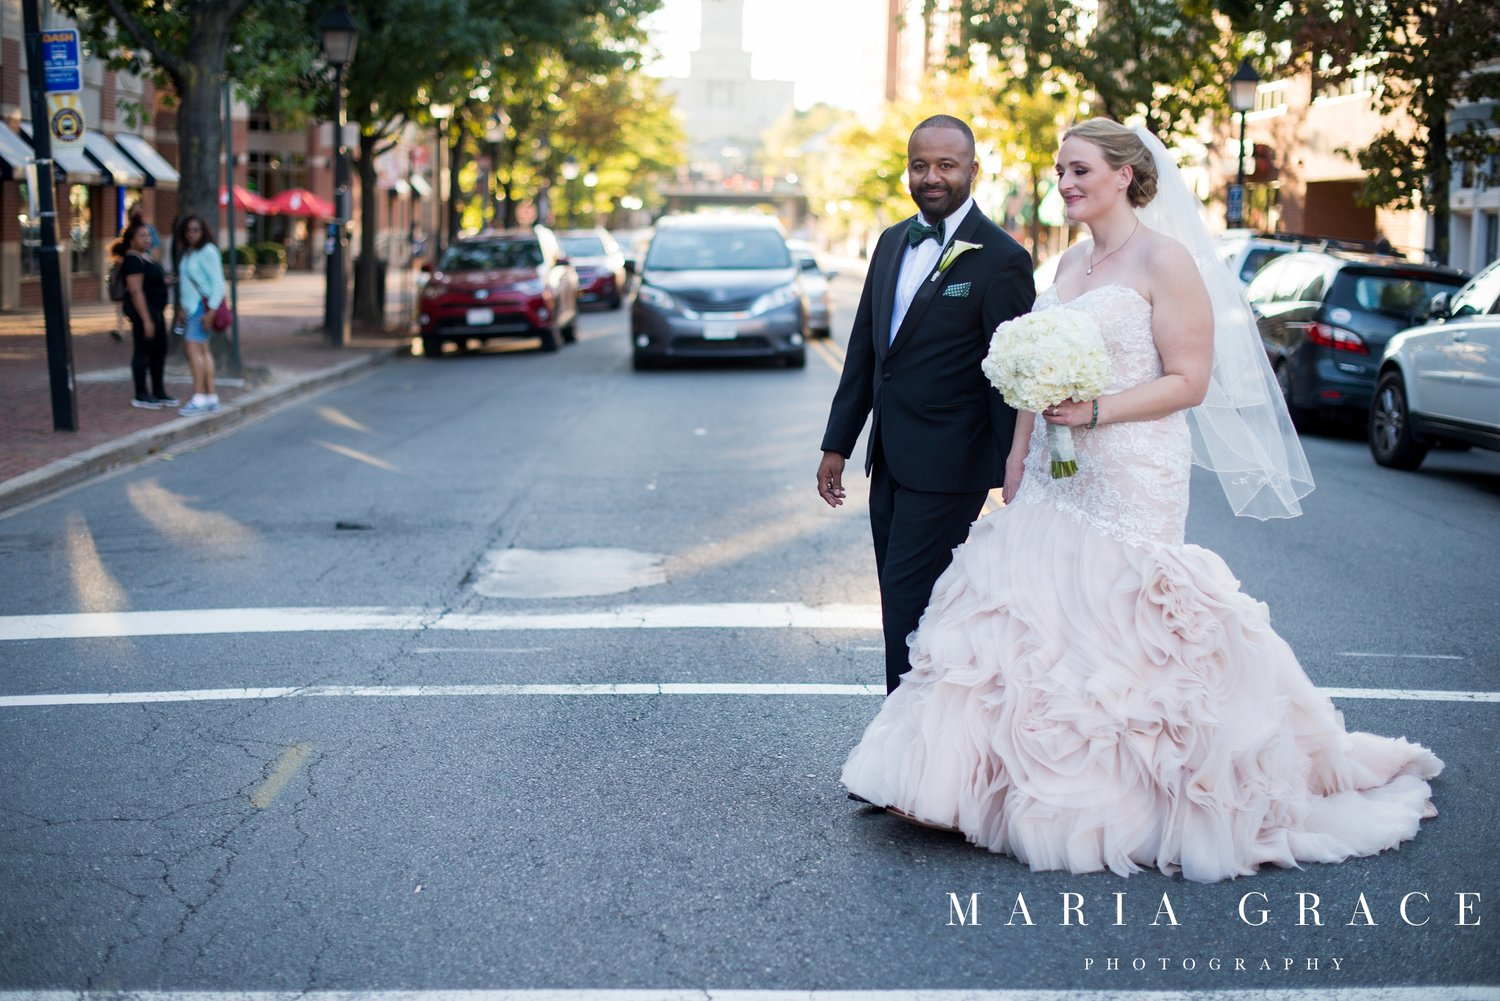 e49c68e42 Jessica + Ryan on September 23, 2017 ♥ Maria Grace Photography at The  Lorien Hotel